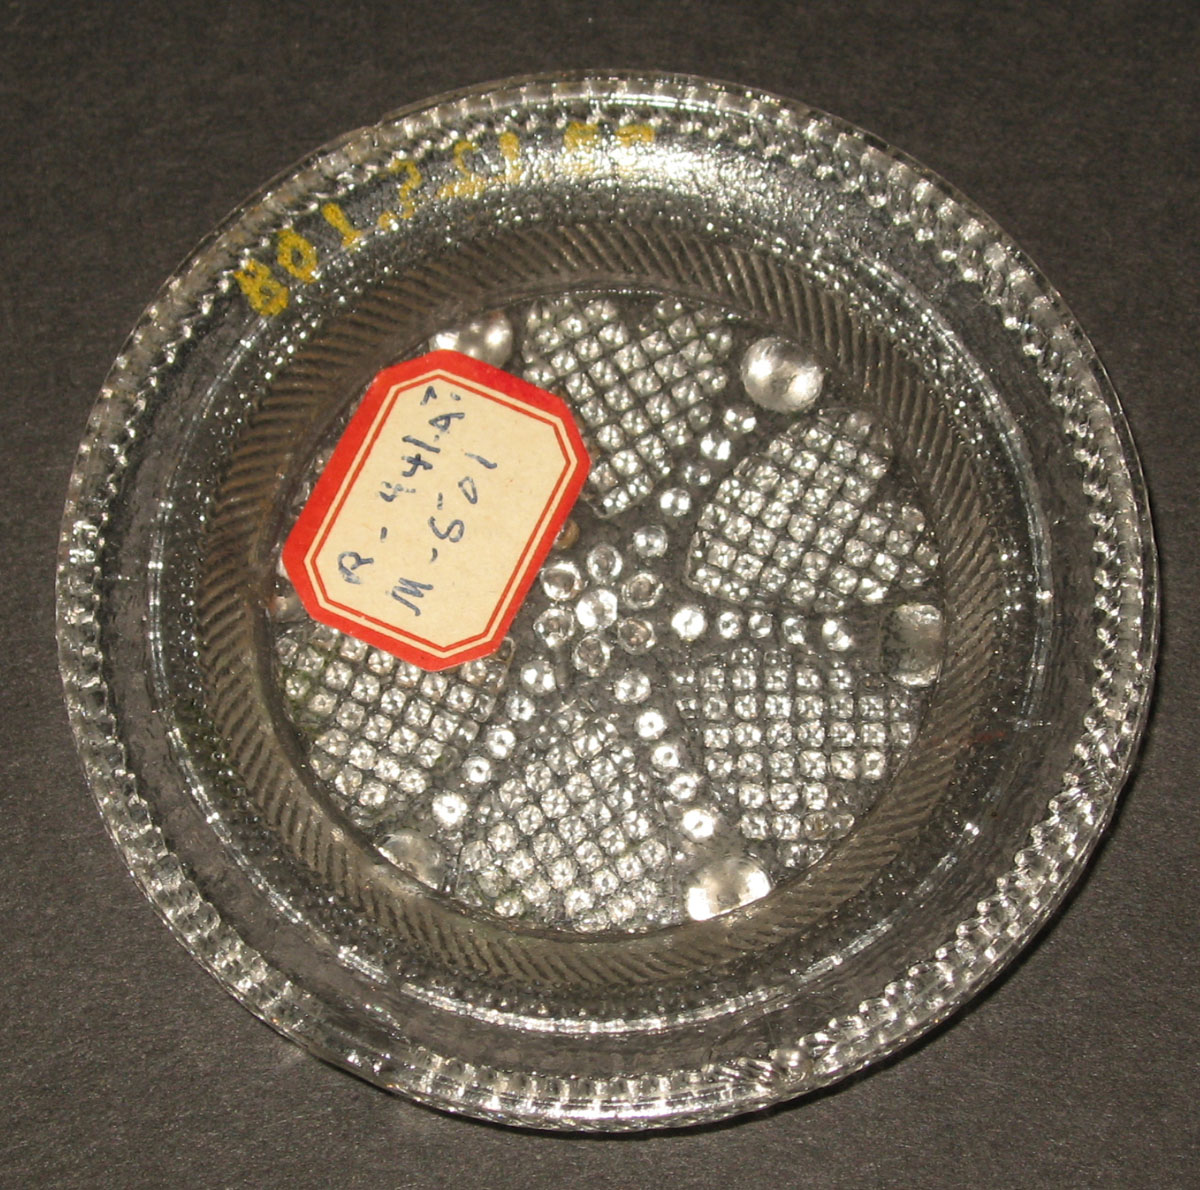 1978.0125.108 Glass cup plate